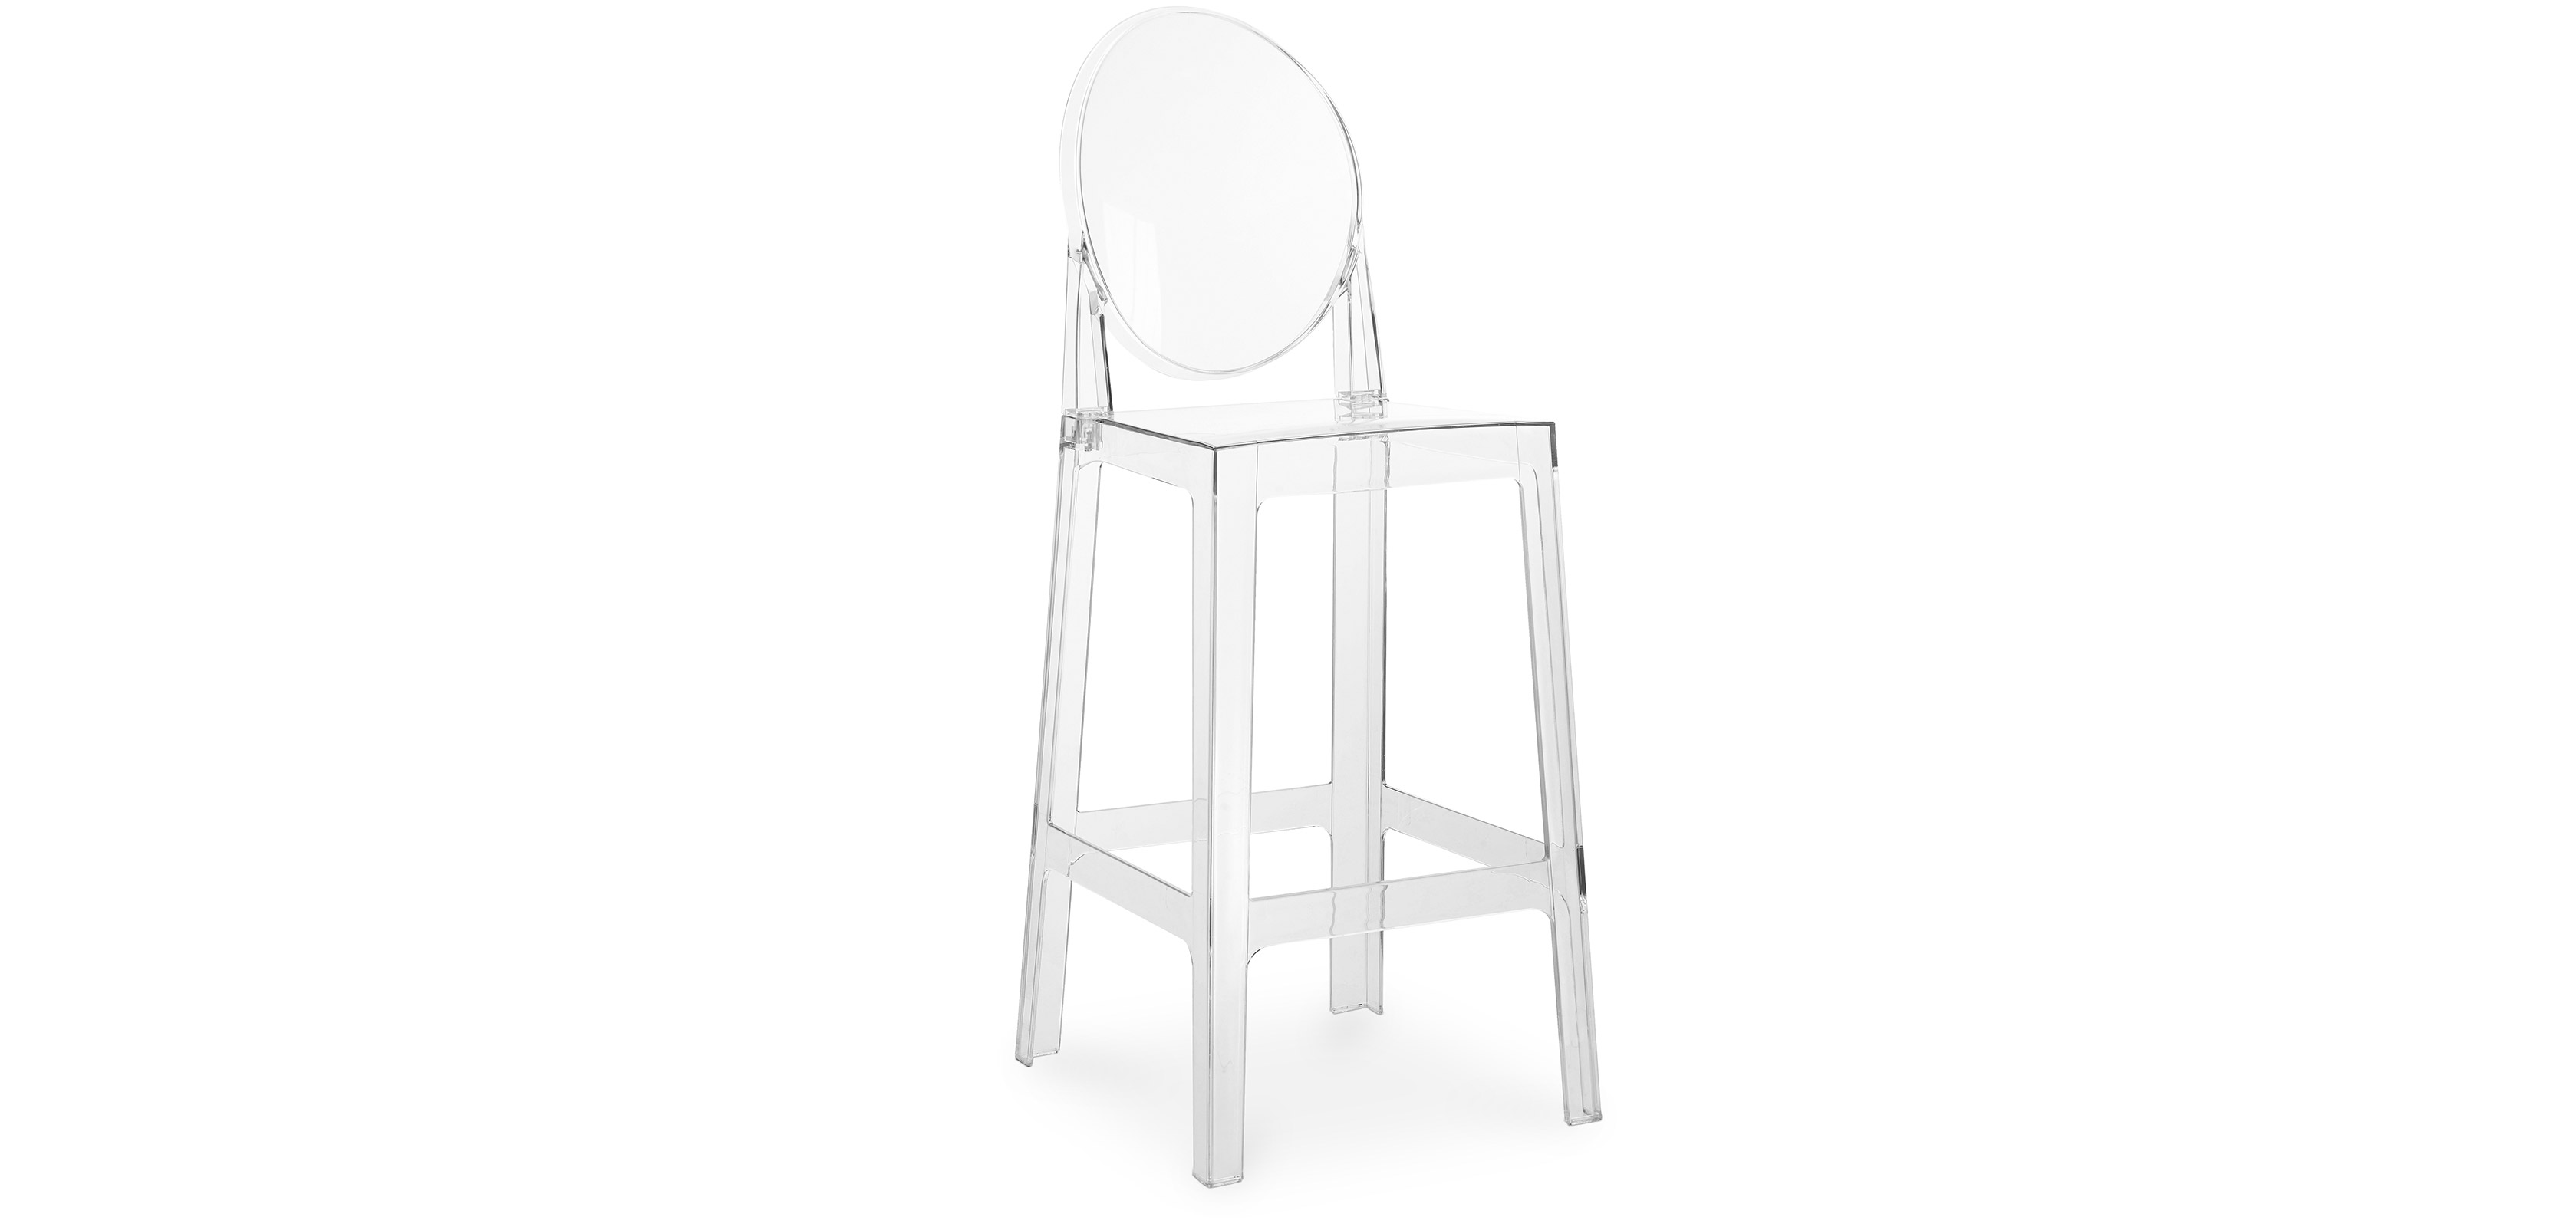 philippe white full replica indoor video starck louis table size of pink children casper chairs toronto chair ghost kids